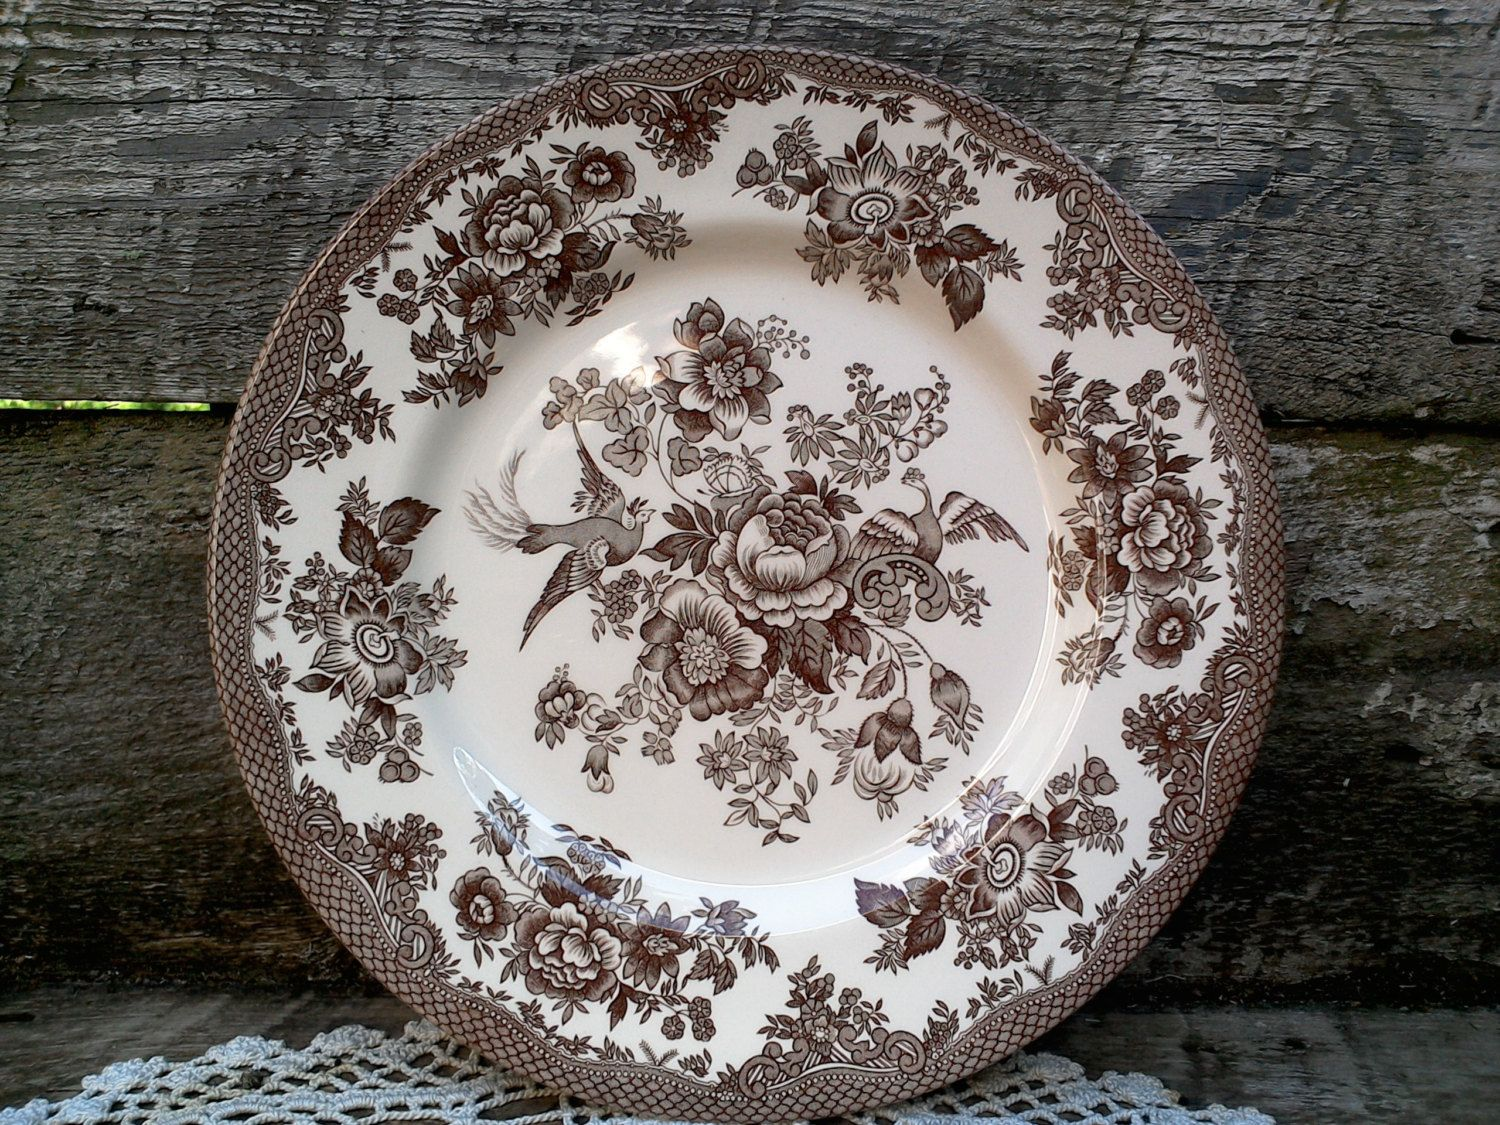 ROYAL STAFFORD Brown Transferware Pheasant Large 11\  plate Dinner Plate Aesthetic Pheasants Plate England Serving Wall Decor : pheasant dinnerware - pezcame.com